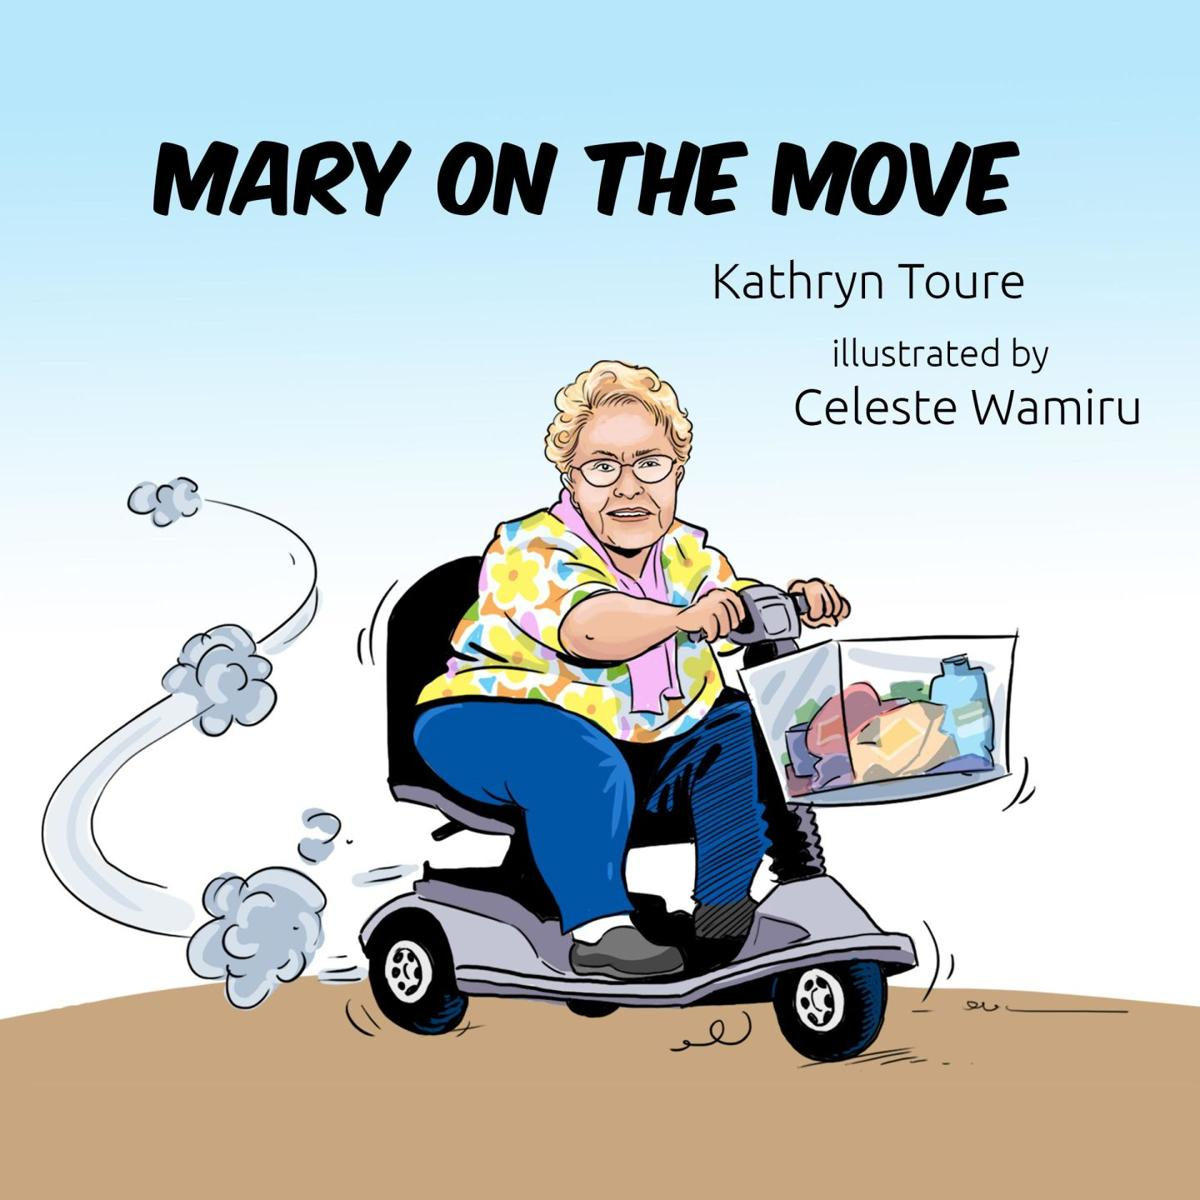 Mary on the Move, a graphic novel